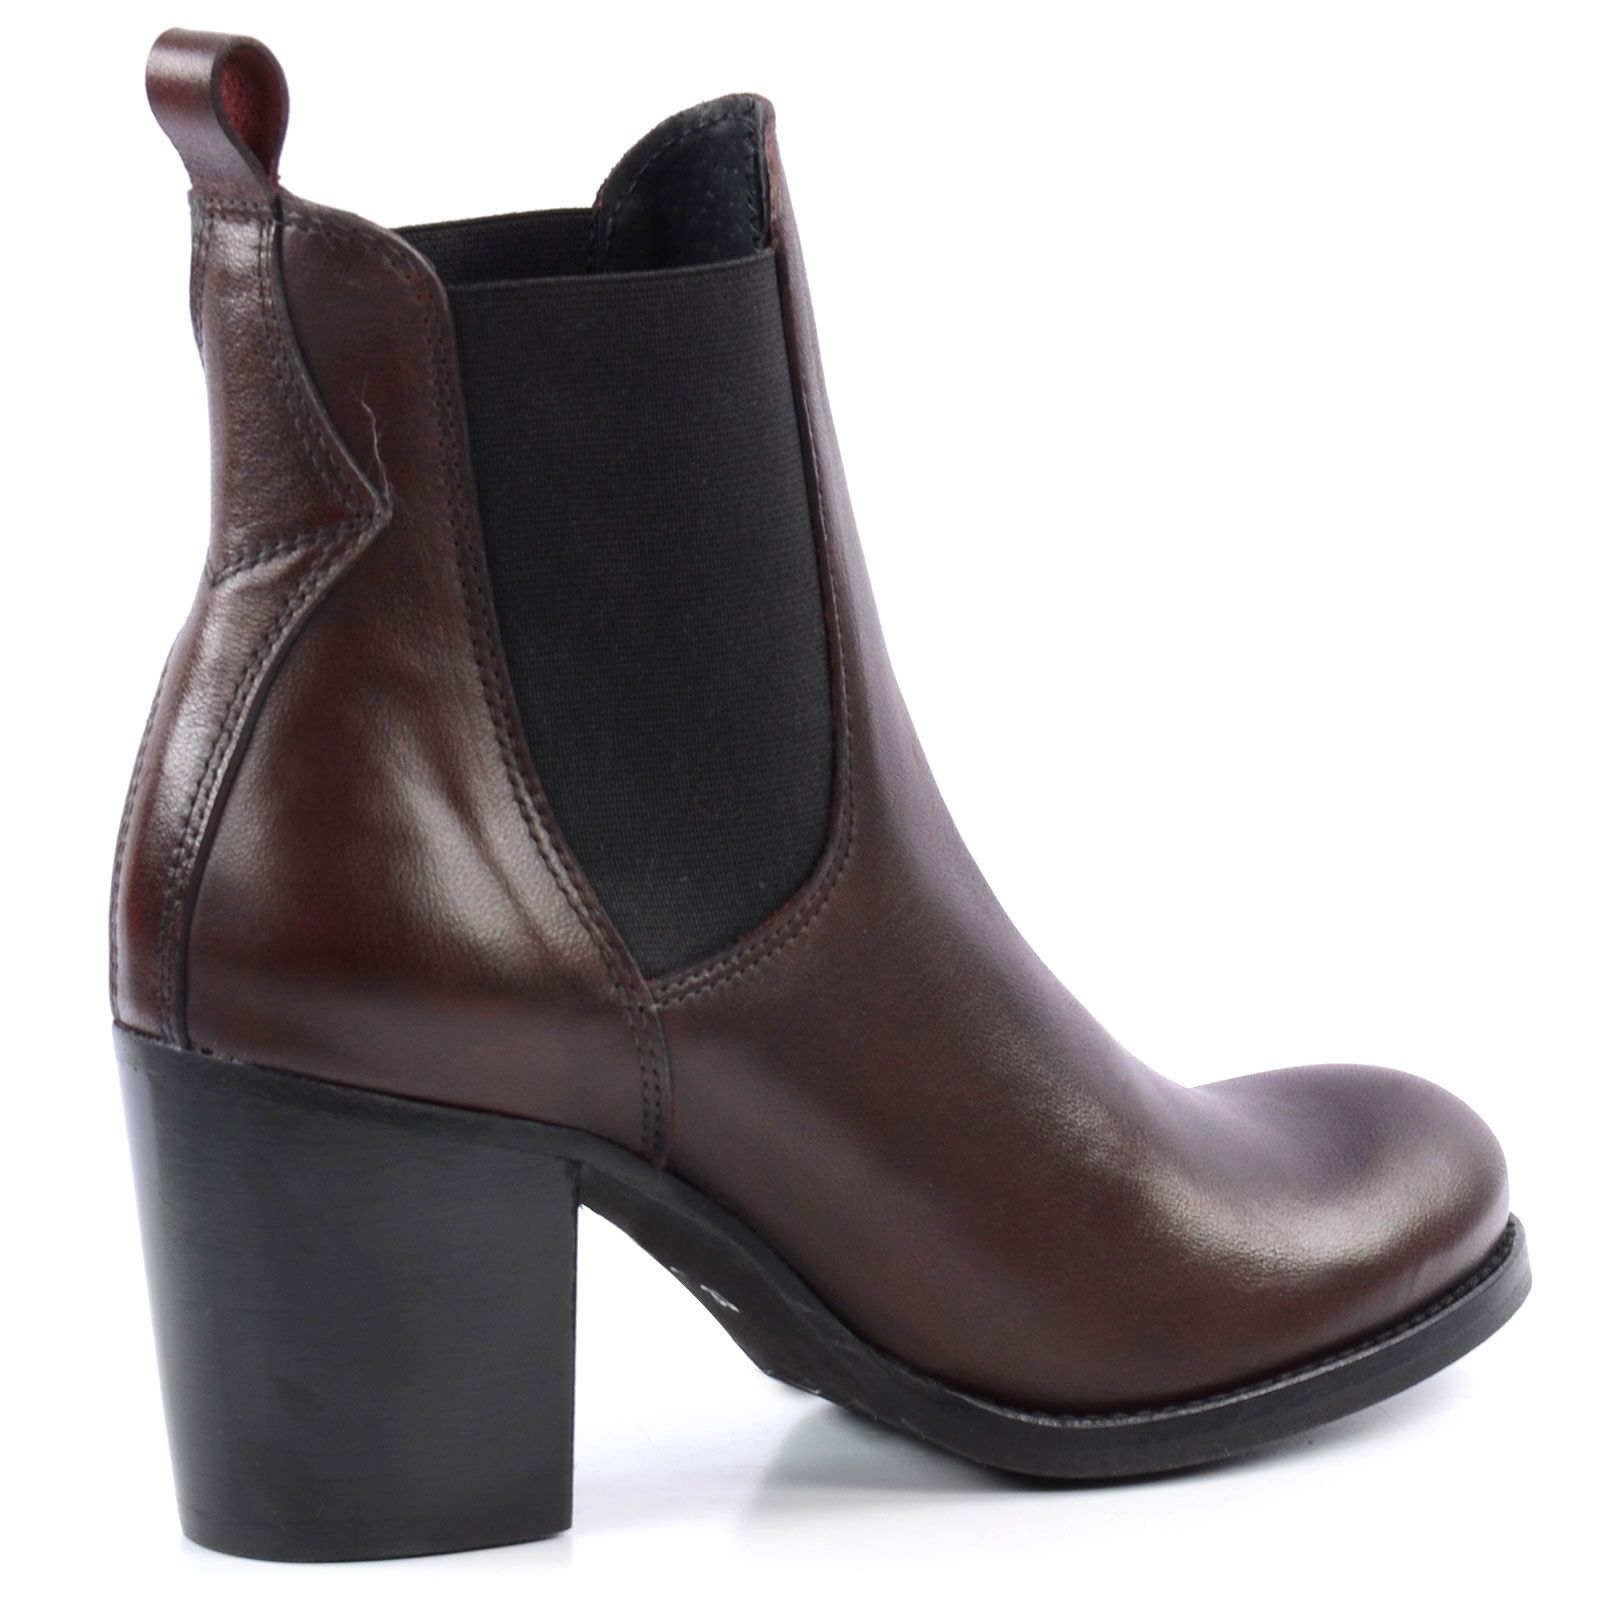 chelsea boots mit blockabsatz bordeaux damenschuhe. Black Bedroom Furniture Sets. Home Design Ideas